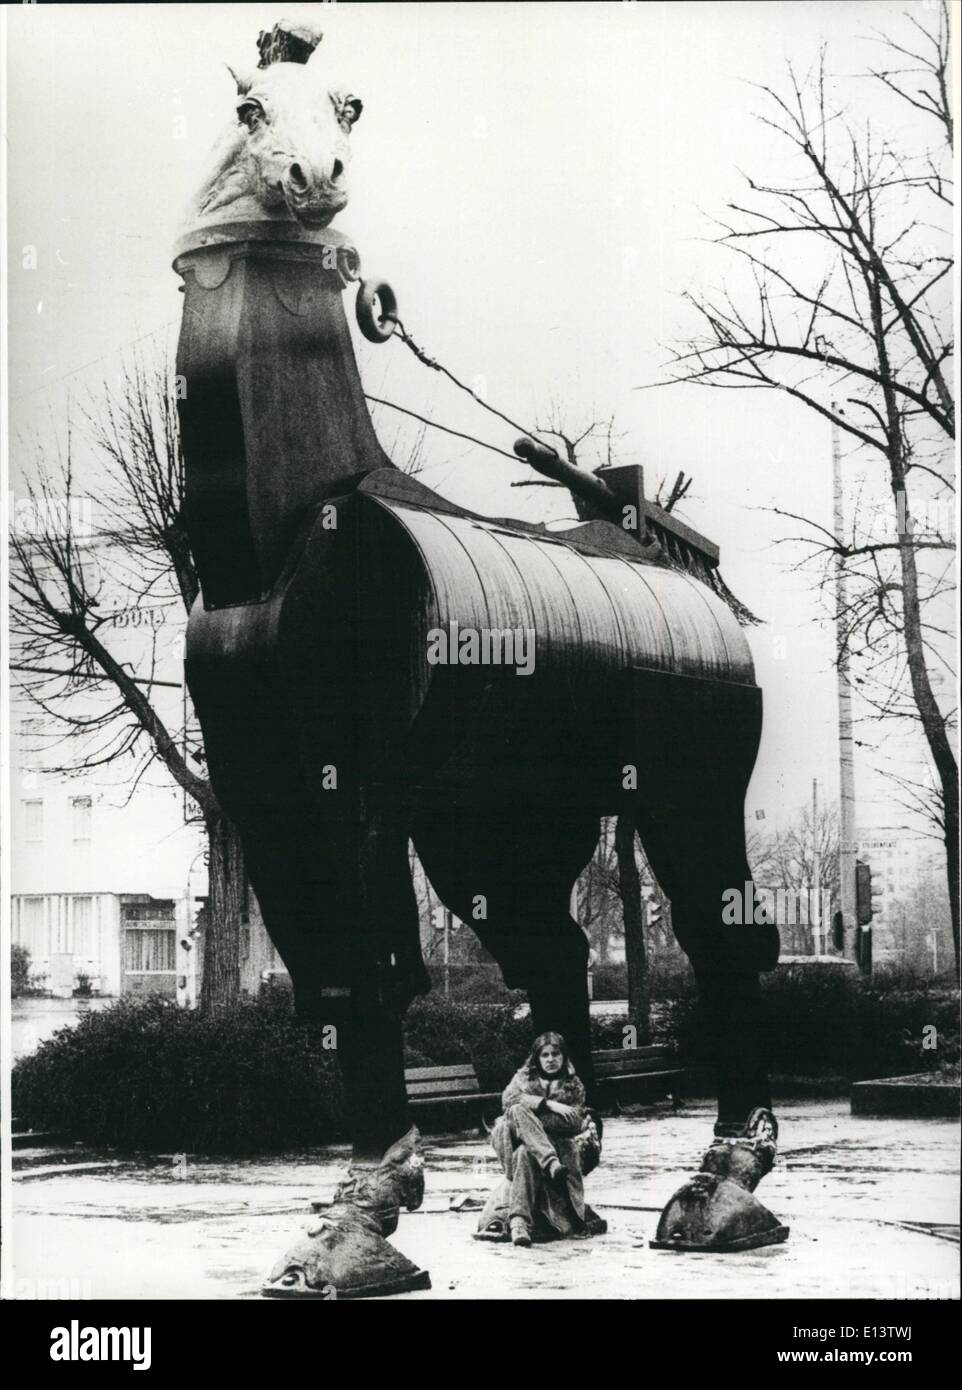 Mar. 27, 2012 - Exhibition ''Polychrome Plastic 1971-1981'' In Darmstadt/West-Germany (March 15th. -April 26-81): This immense ''horse of the Muses''.....was erected in front of the hall of art in Darmstadt/West Germany. This six meter high ans five metre wide horse is work of the sculptor Jurgen Goertz (Jurgen Goertz - on this photo at the bottom of the horse), whose exhibition ''Polychrome Plastic 1971-1981, is still lasting until April 26th, 1981. Besidesm, at the hall of art in Darmstadt, 50 plastic sculptures and reliefs (partially with other materials) can be seen - Stock Image